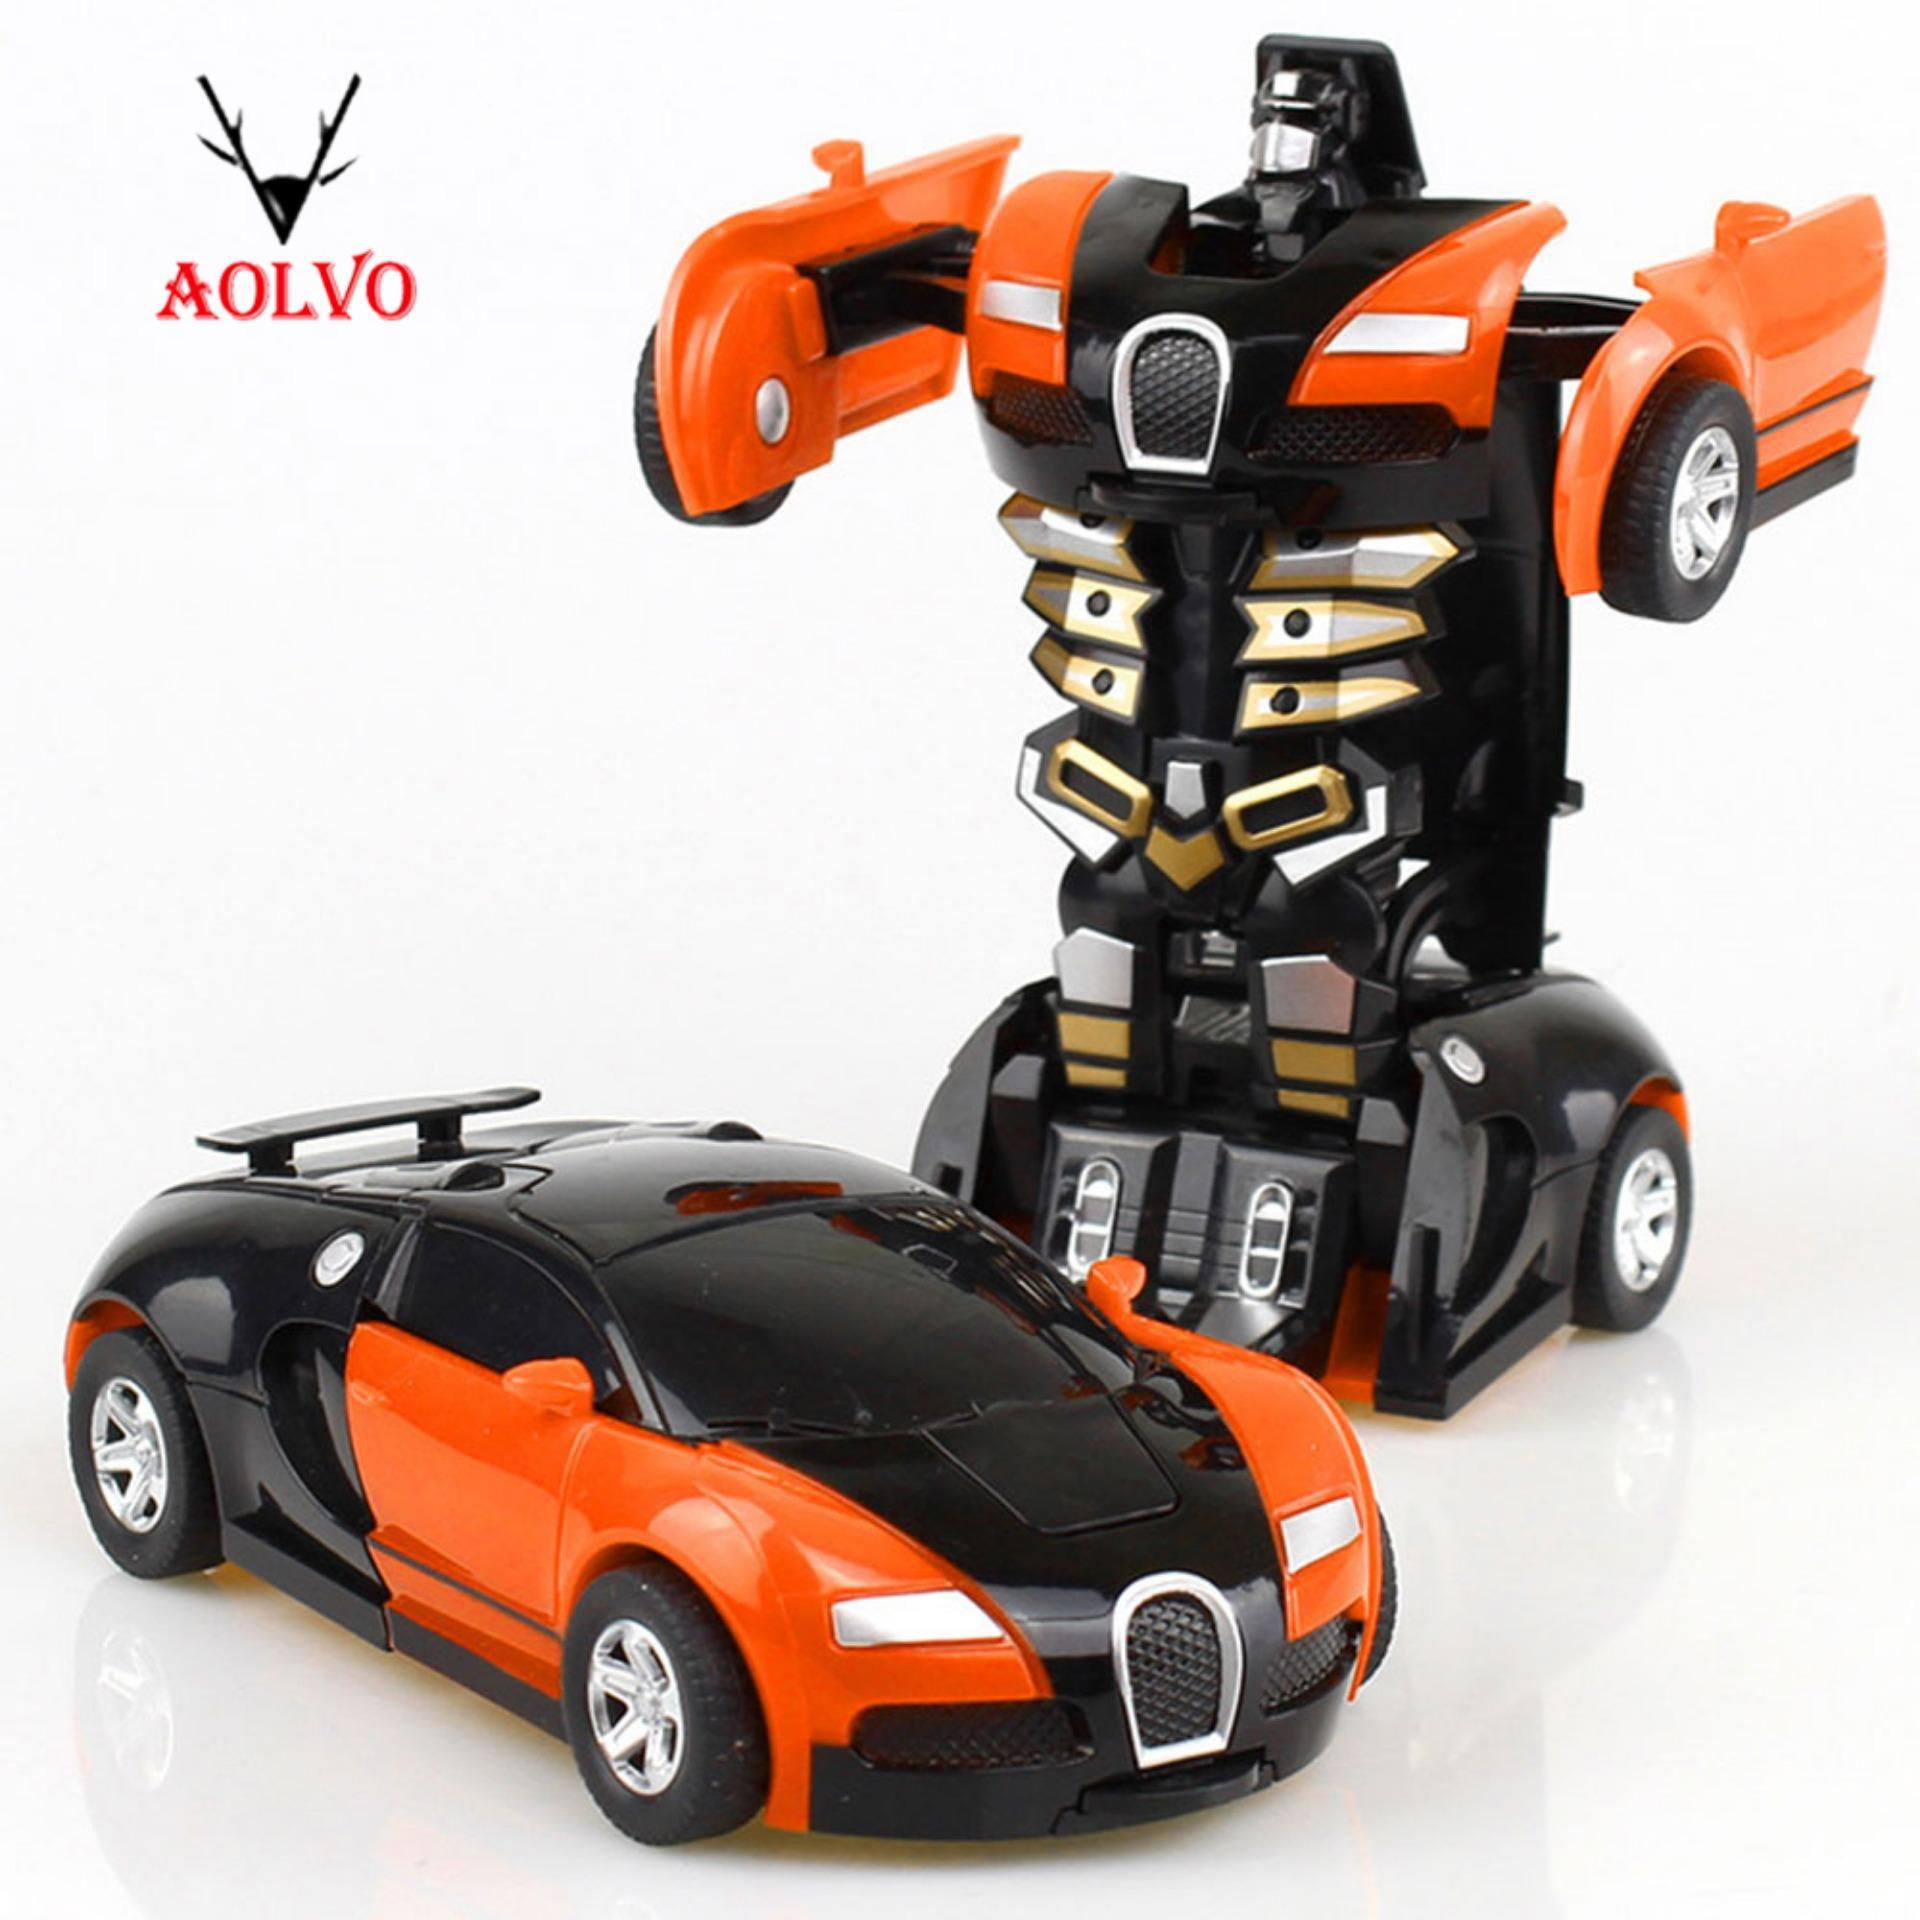 Electronic Remote Control Toys Buy Electronic Remote Control